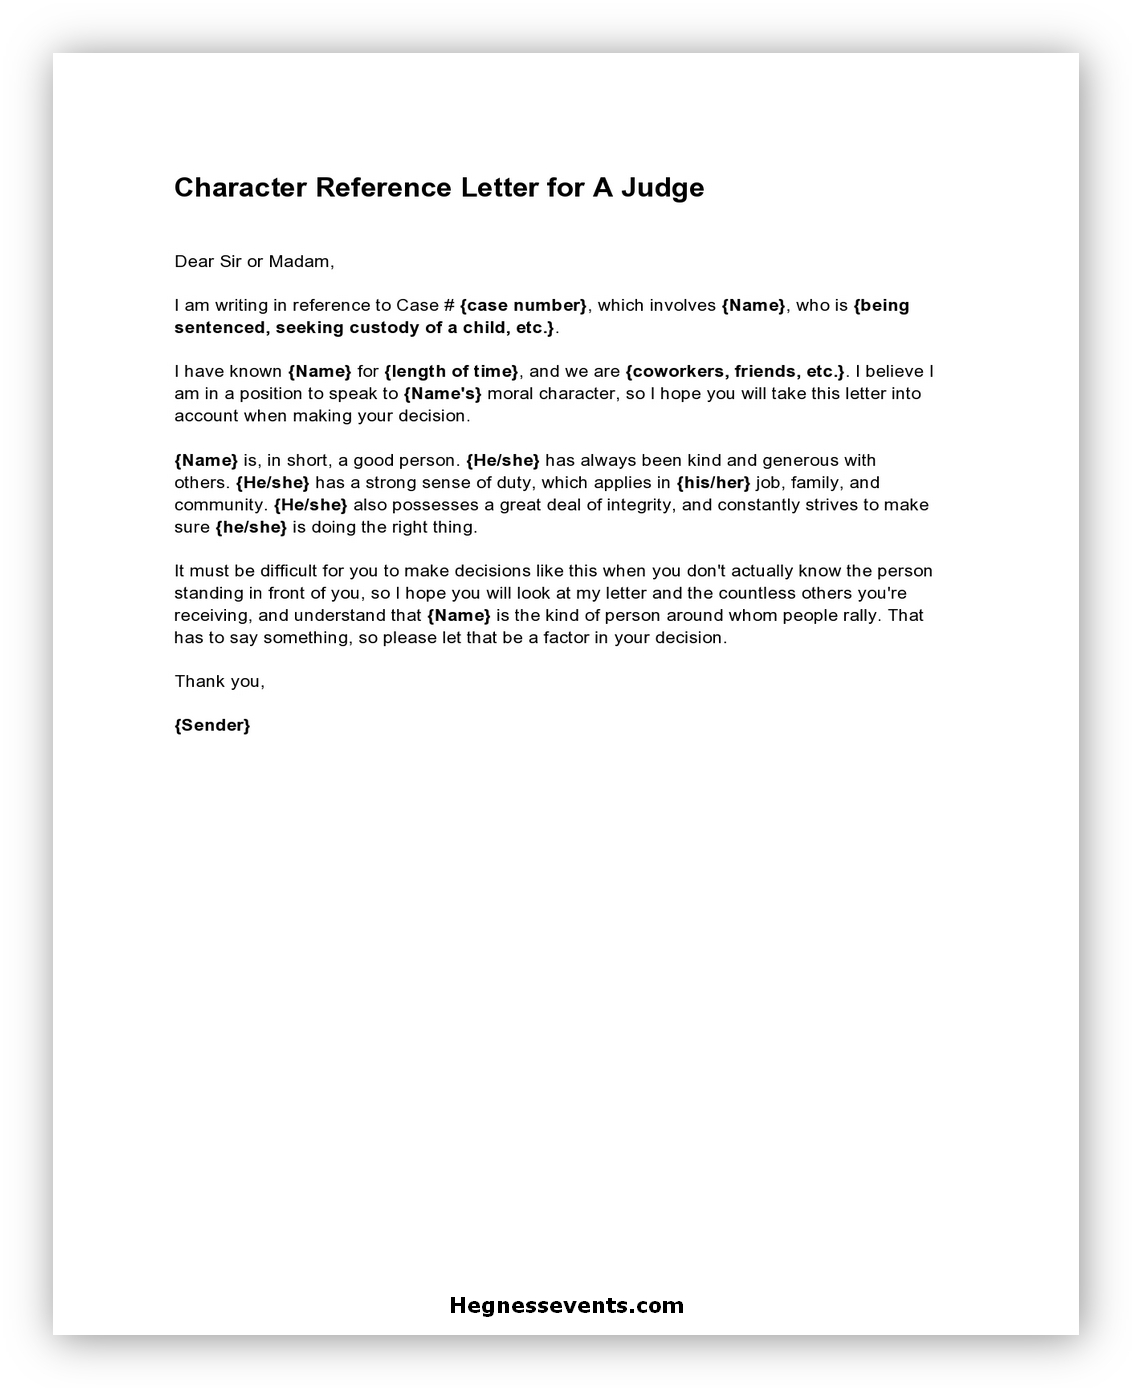 Letter of Reference Character 01